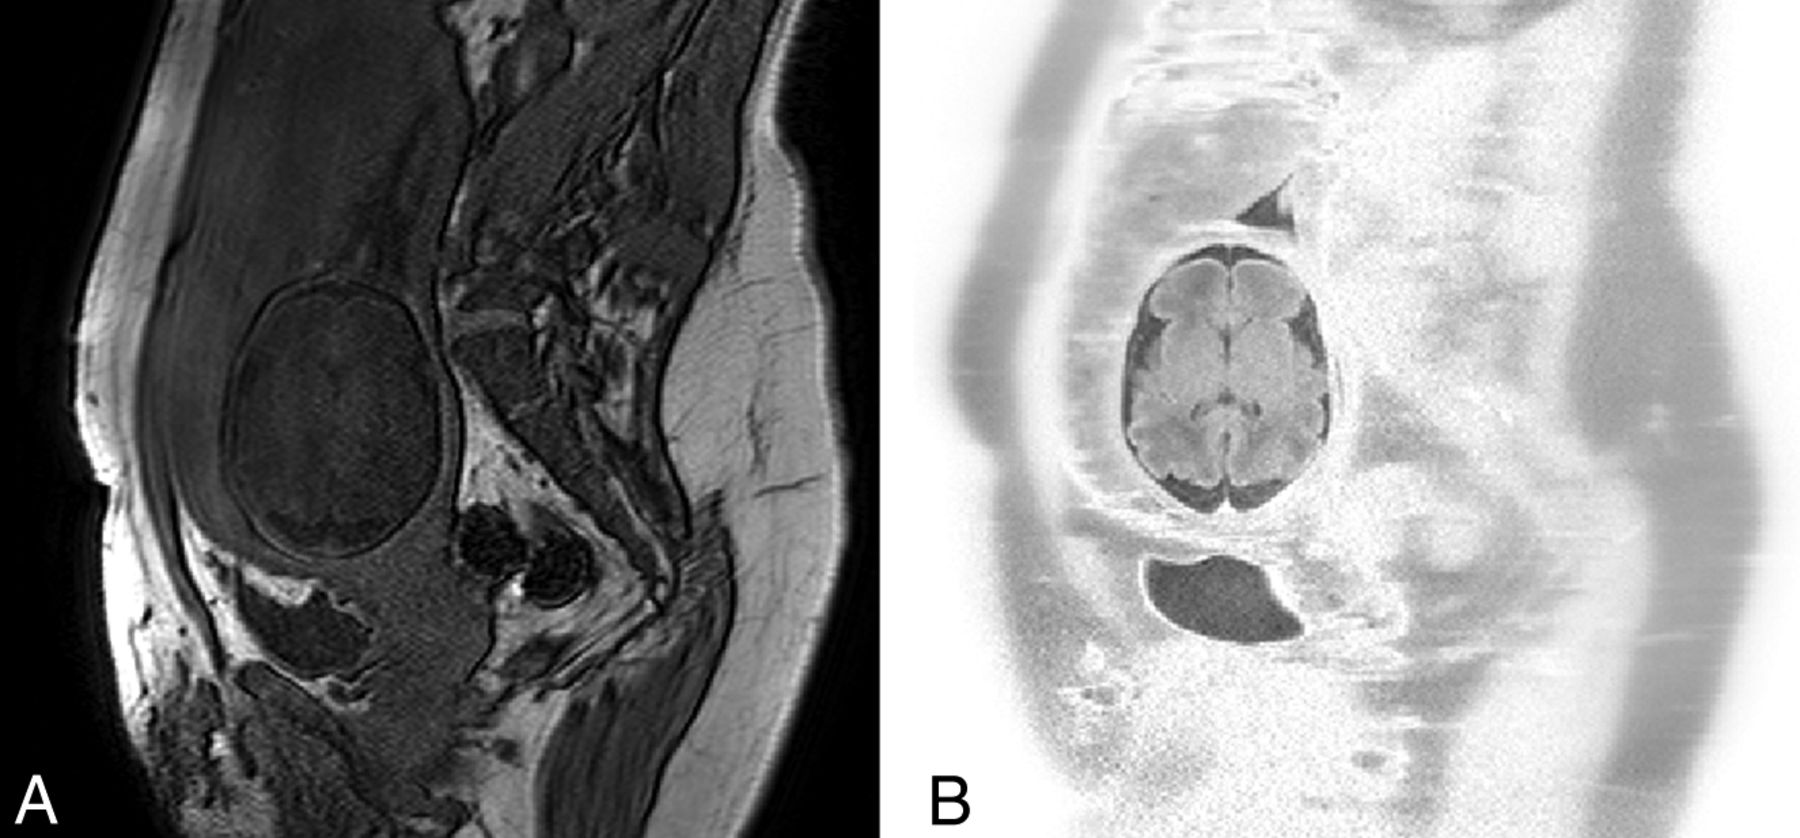 Motion-Compensation Techniques in Neonatal and Fetal MR Imaging